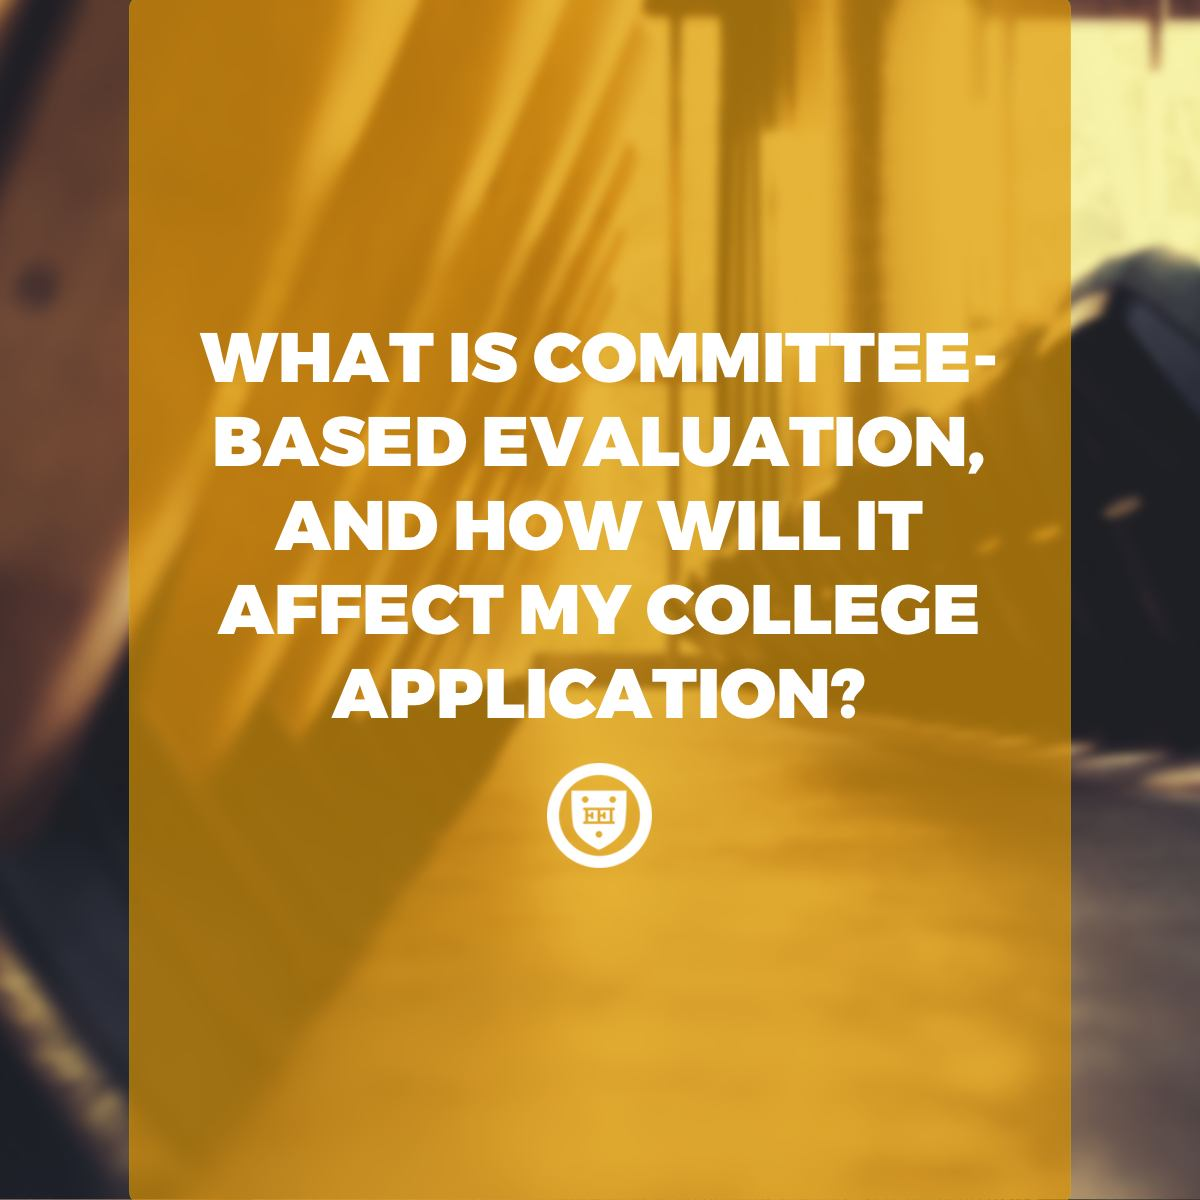 What Is Committee-Based Evaluation, and How Will It Affect